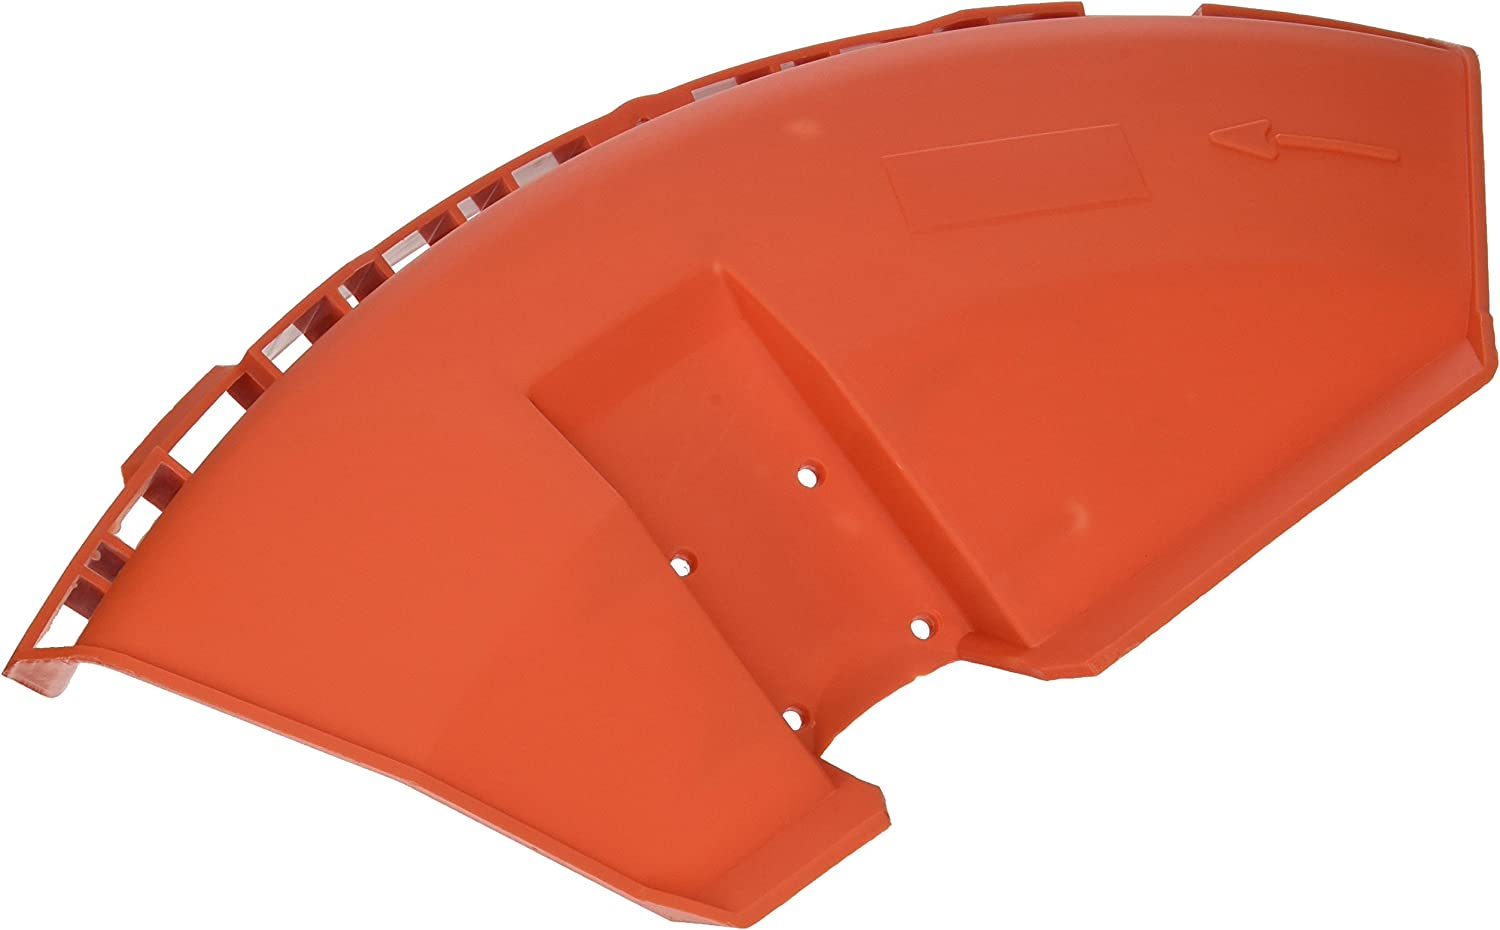 Hitachi 7790324 Safety Guard